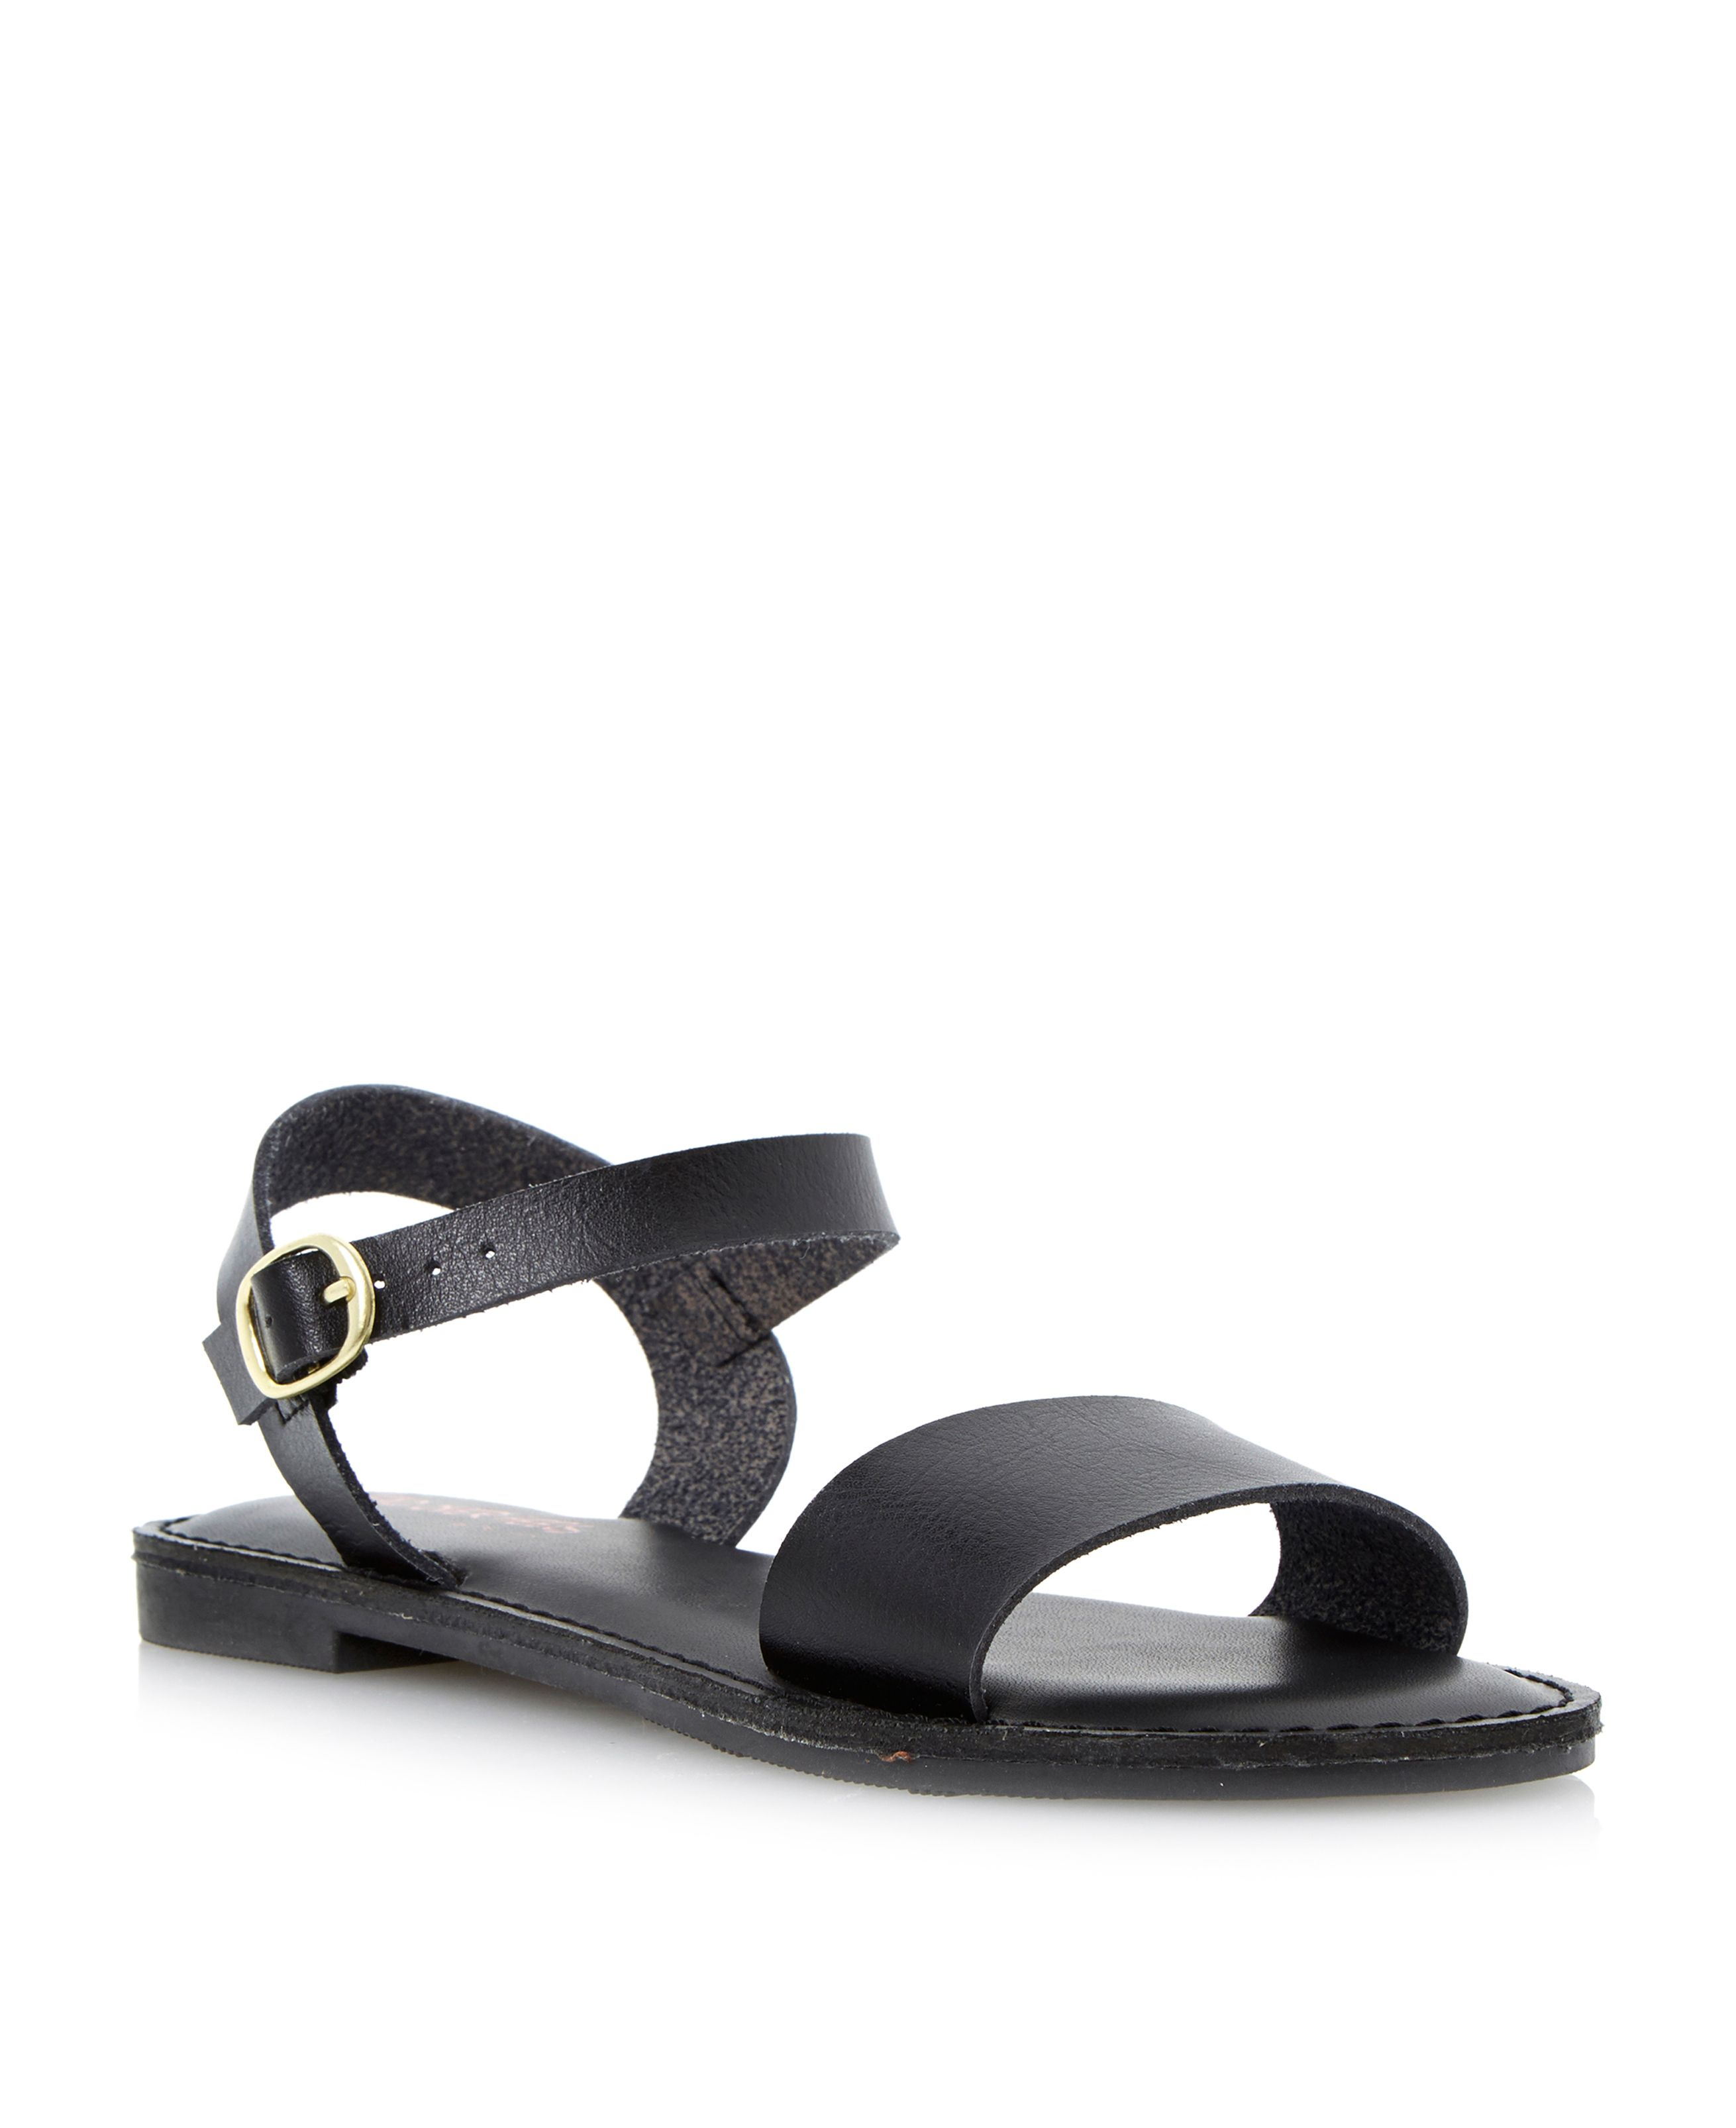 Joyful flat buckle sandals